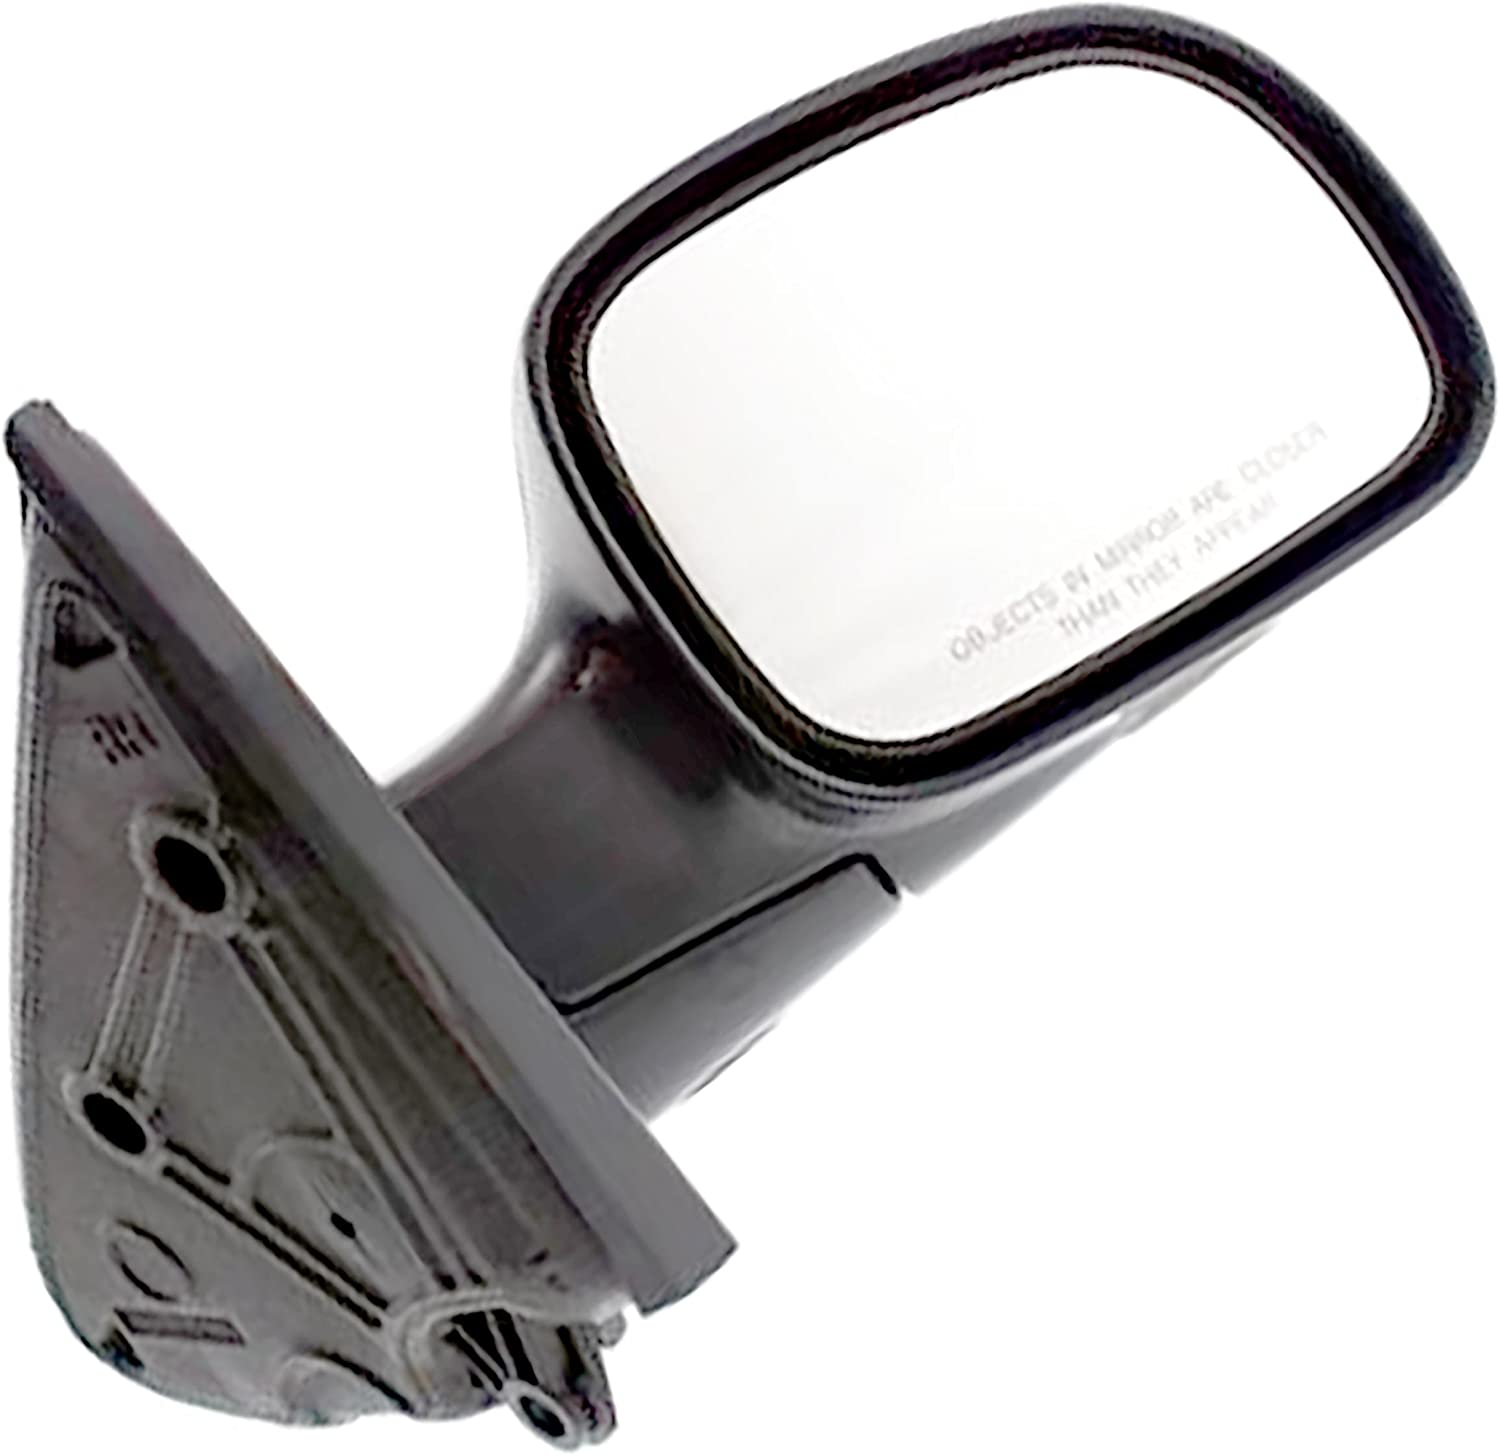 New OEM Mirror fits 2001-2007 Caravan Town /& Country Voyager Driver Side Black